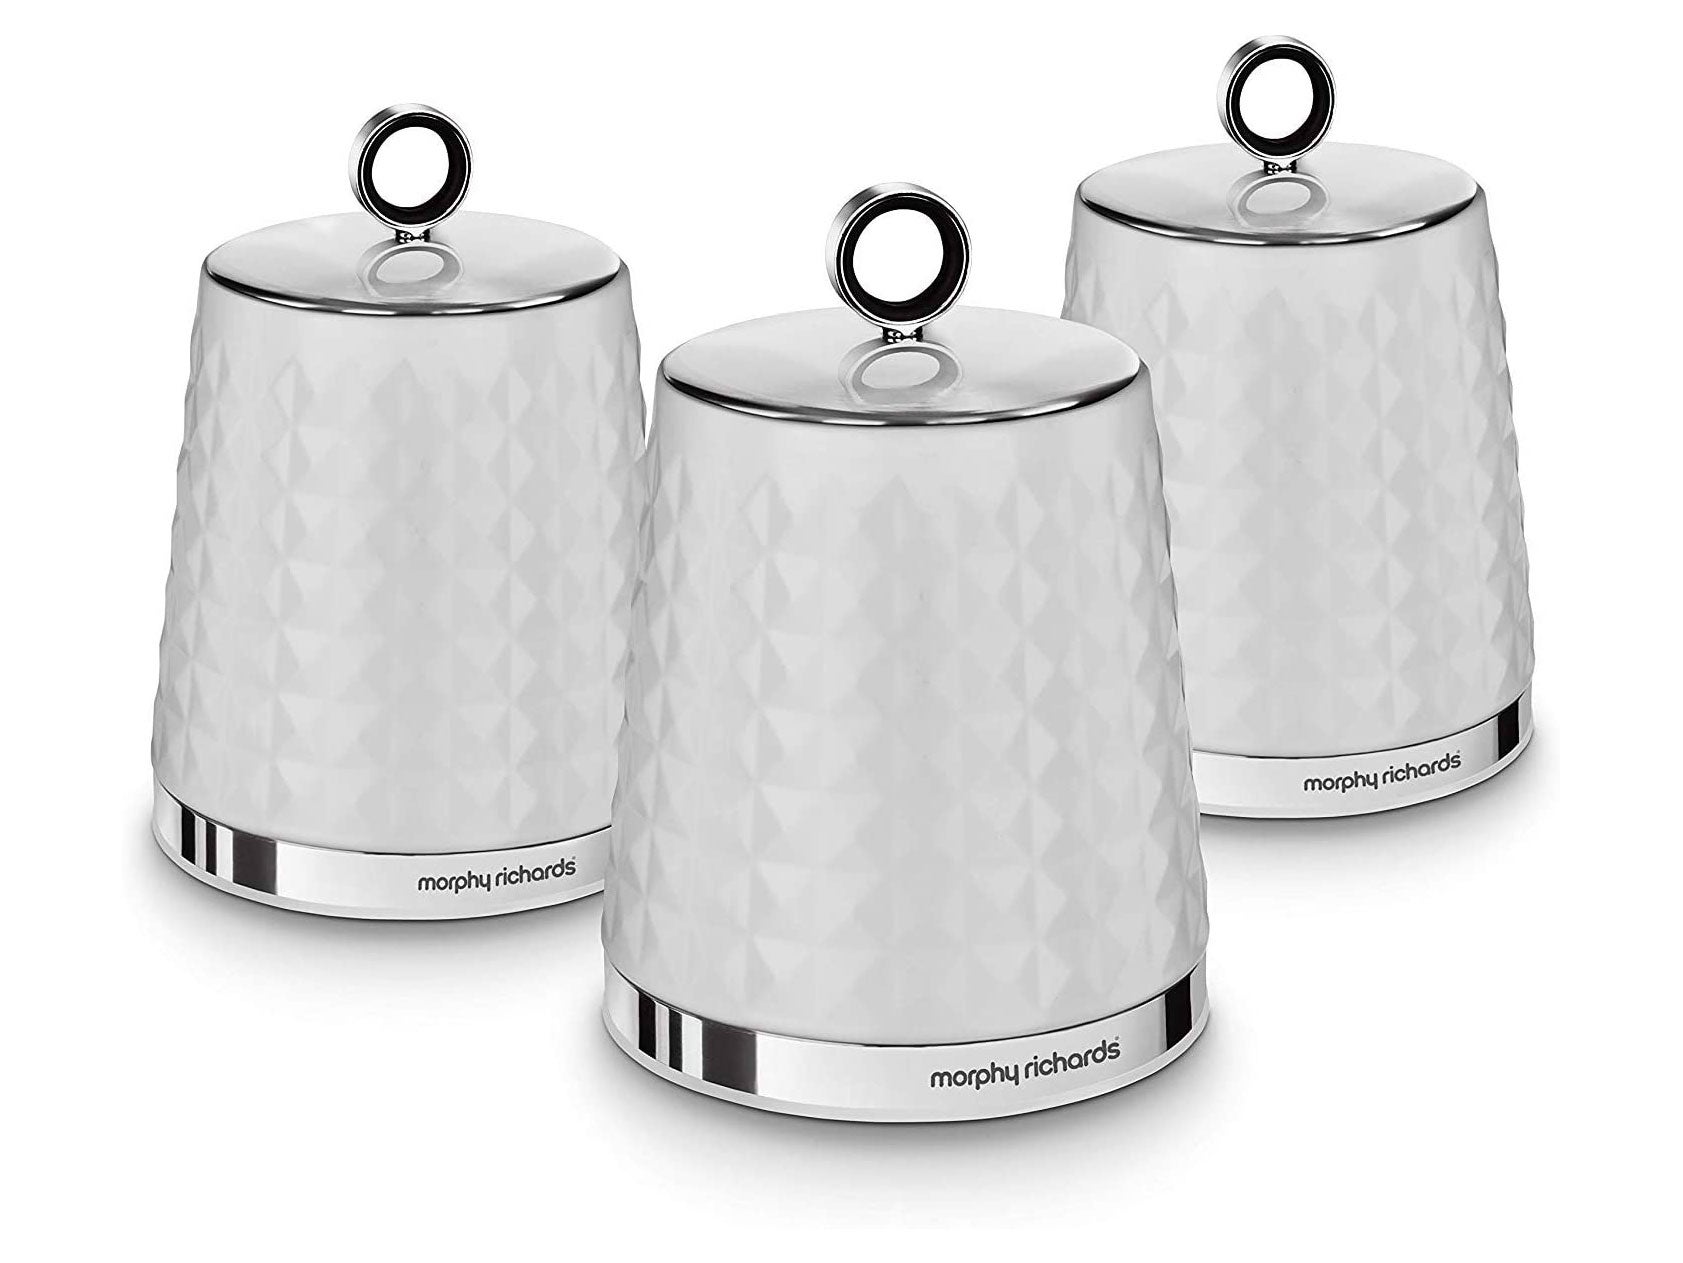 Morphy Richards Dimensions Set of 3 Round Kitchen Storage Canisters, White, One size